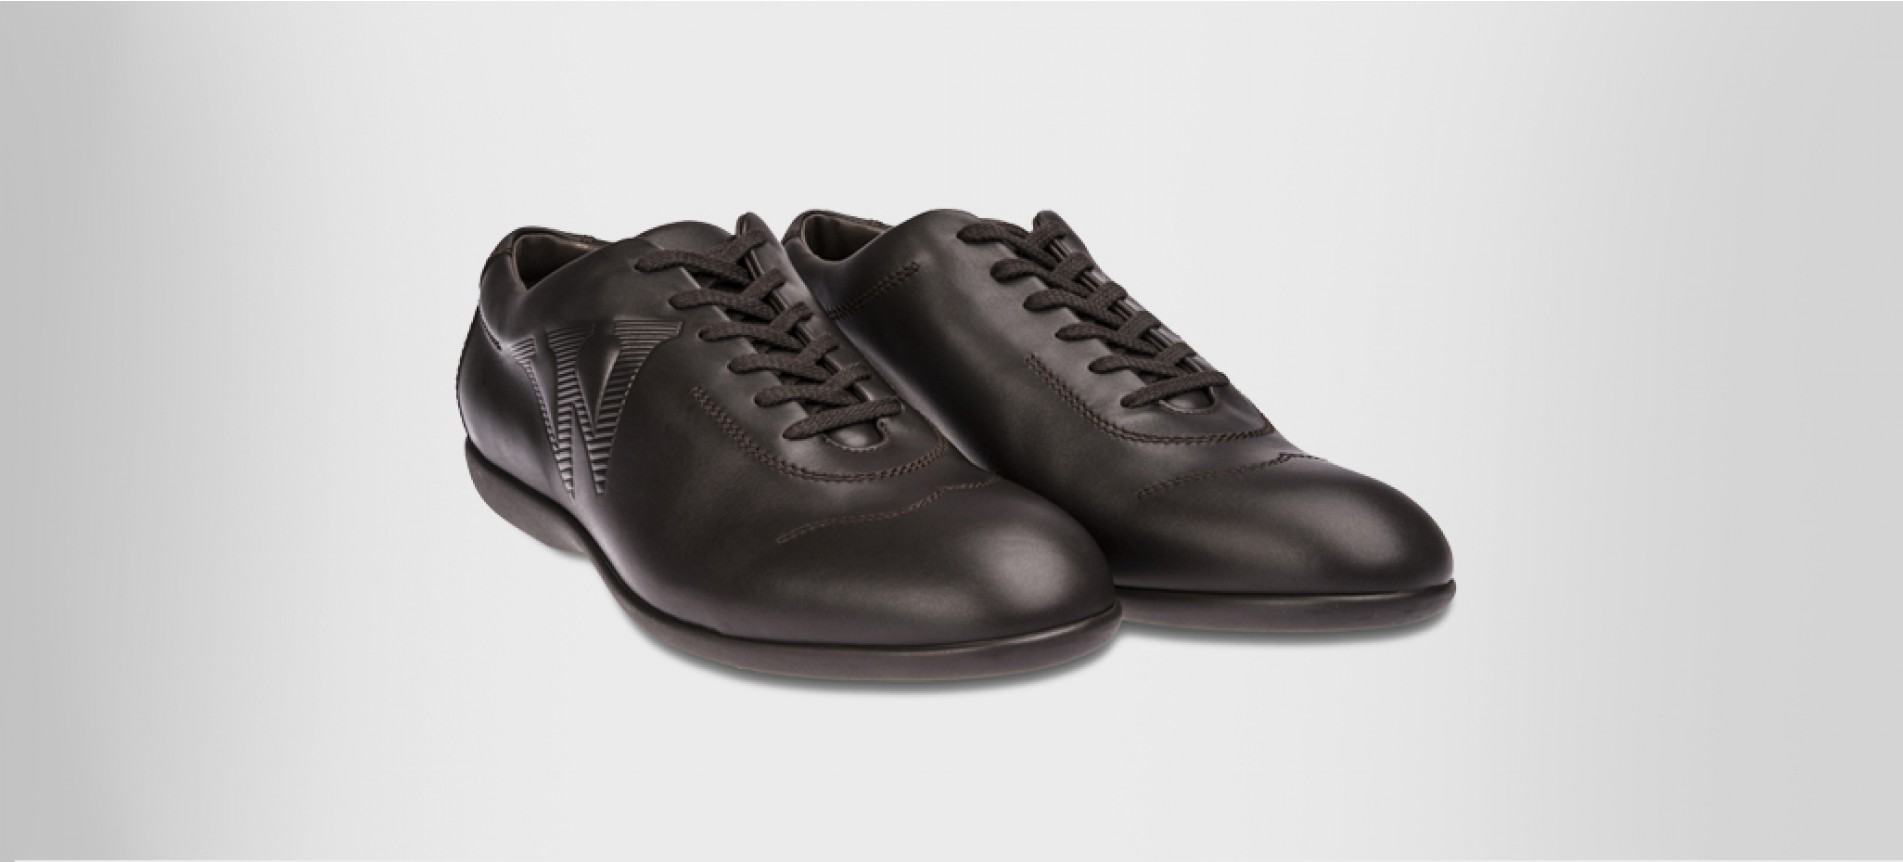 Round-toe trainers - OUTLET Chocolate